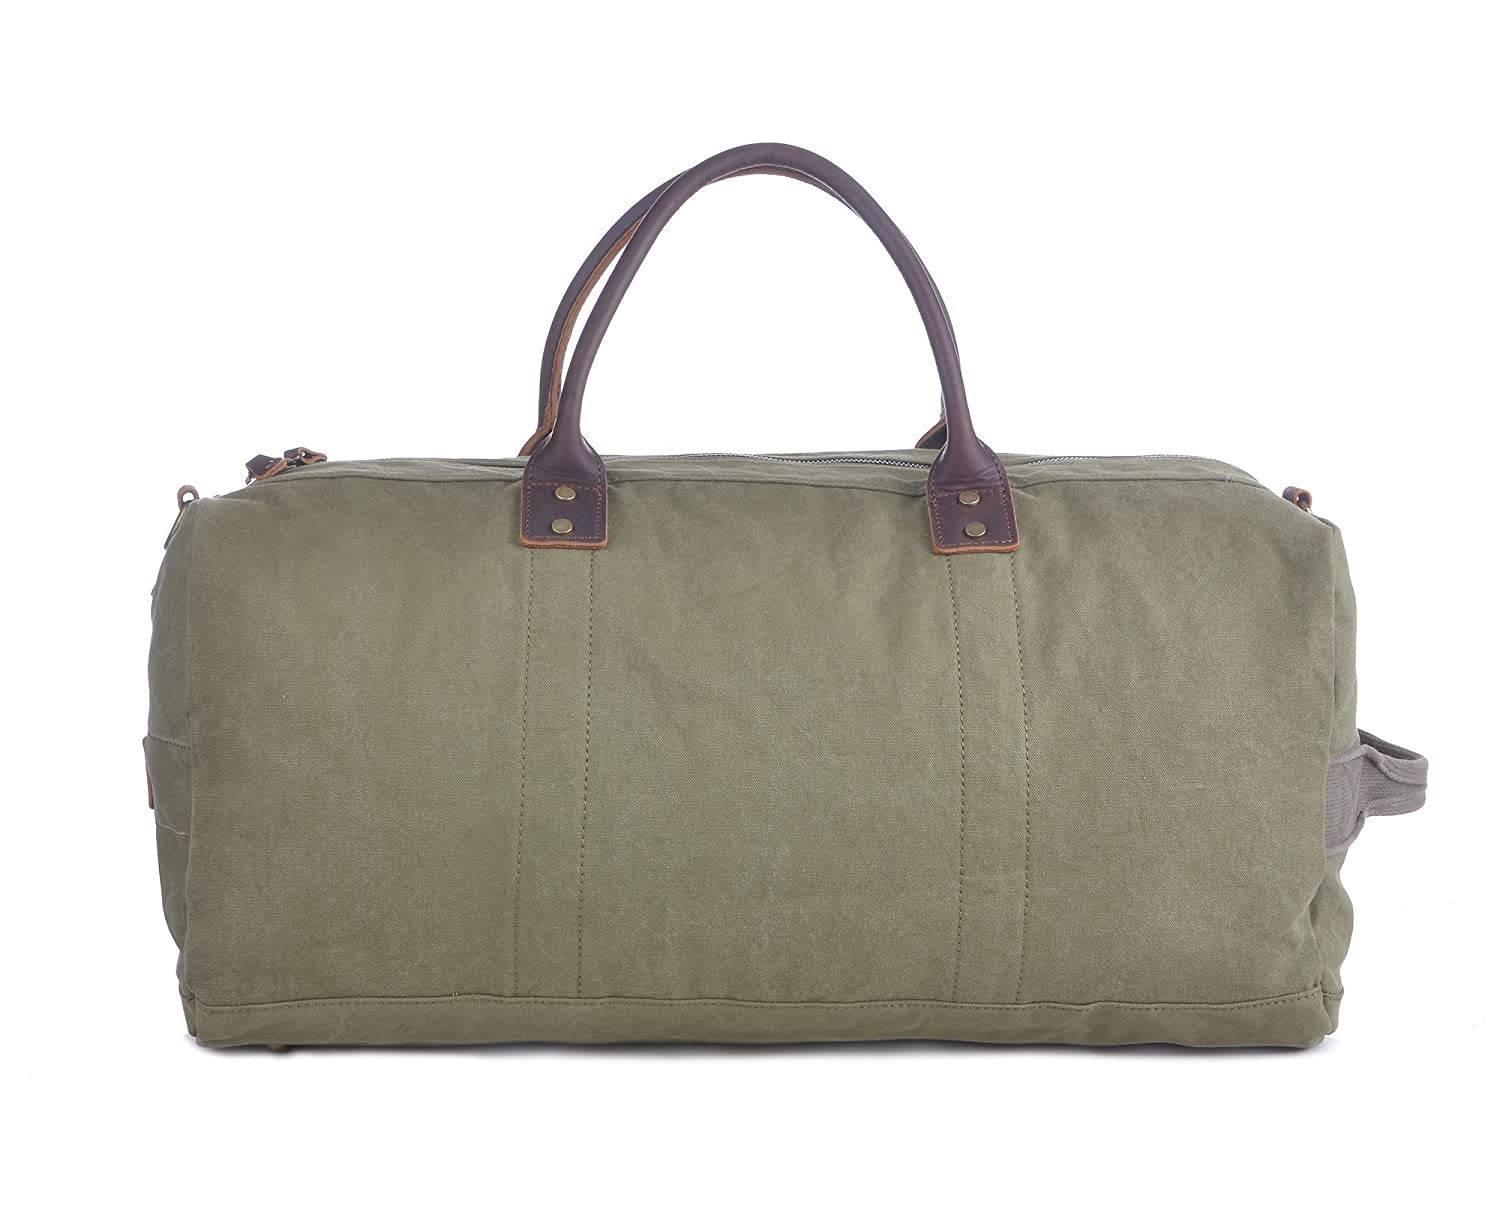 b834abf437 Gootium Duffle Bag - Canvas Travel Tote Carry on Luggage Duffel Overnight  Weekend Bag